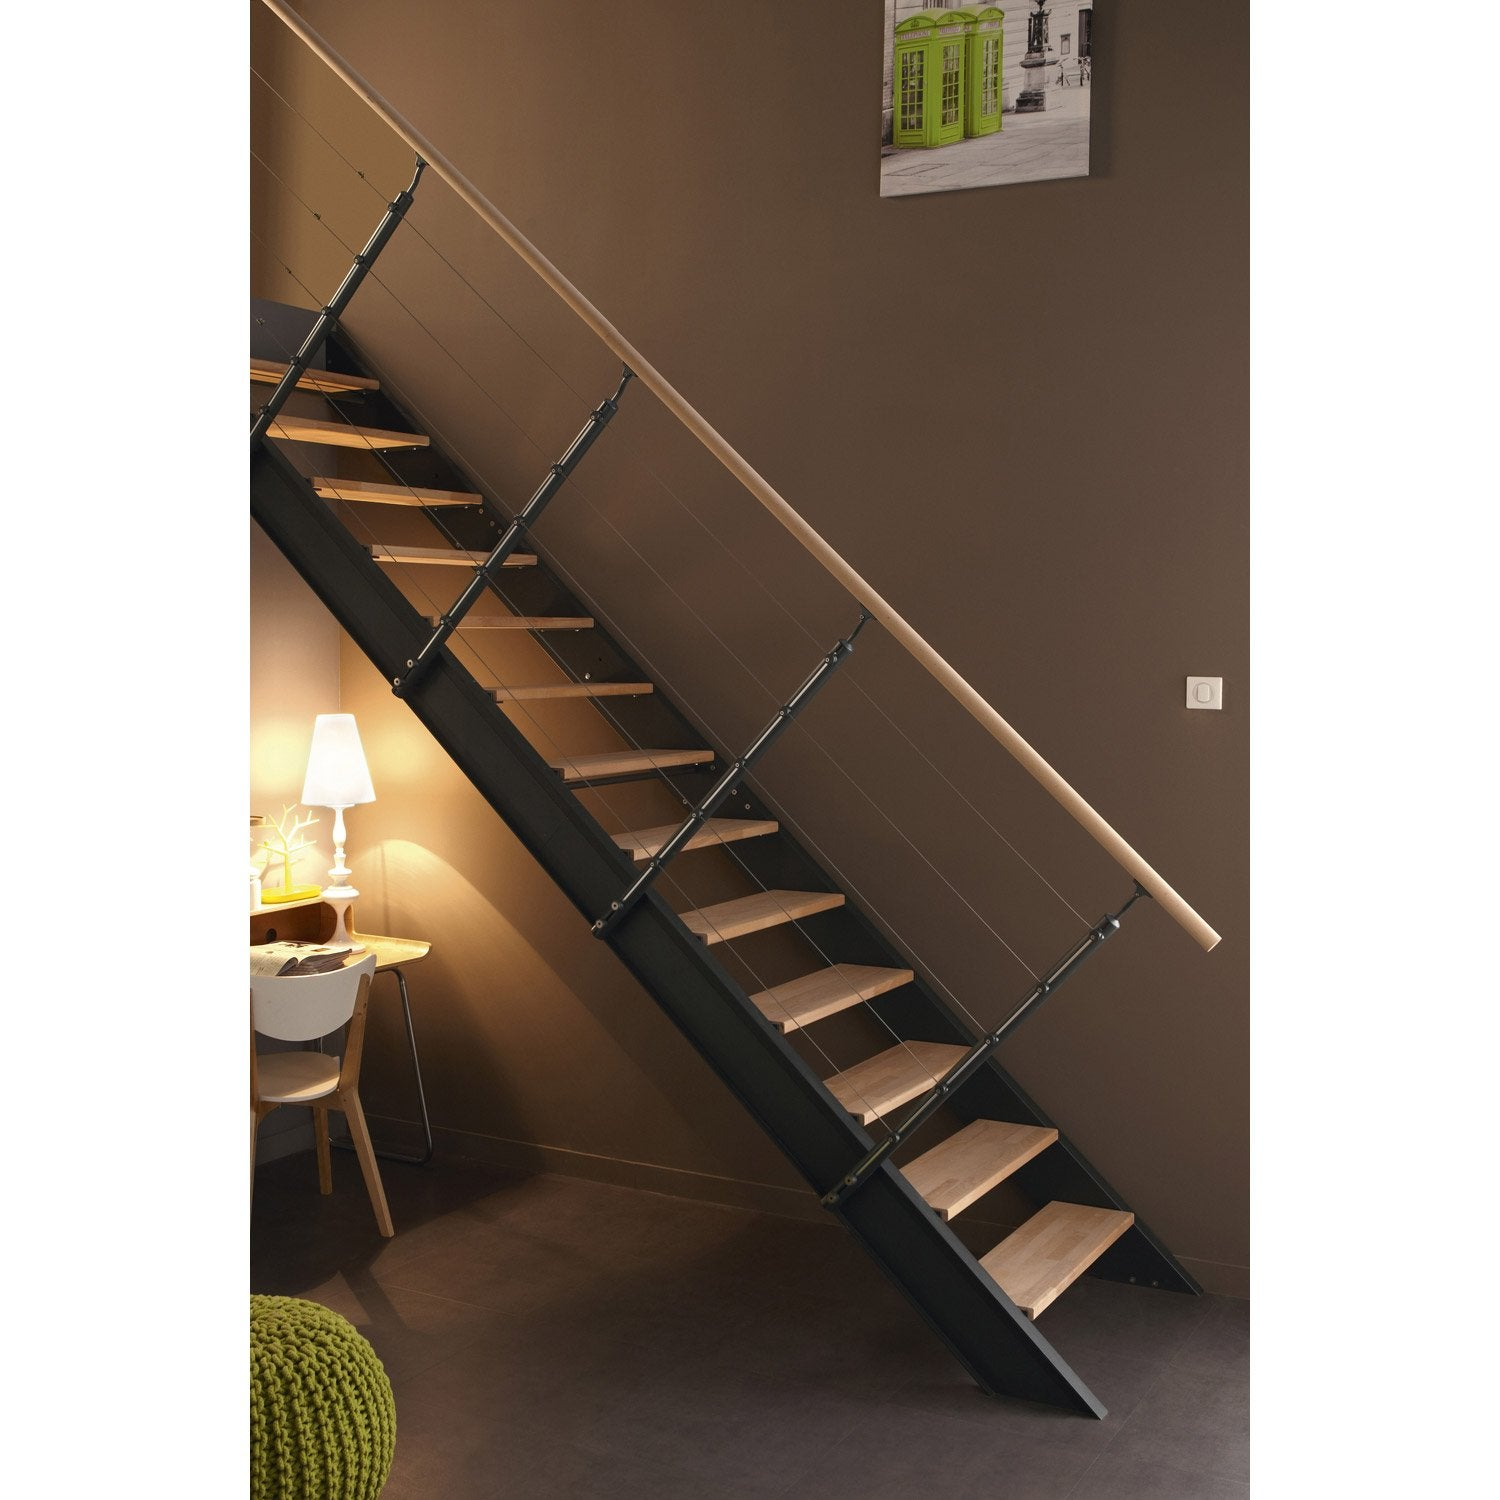 escalier droit lisa structure aluminium marche bois leroy merlin. Black Bedroom Furniture Sets. Home Design Ideas